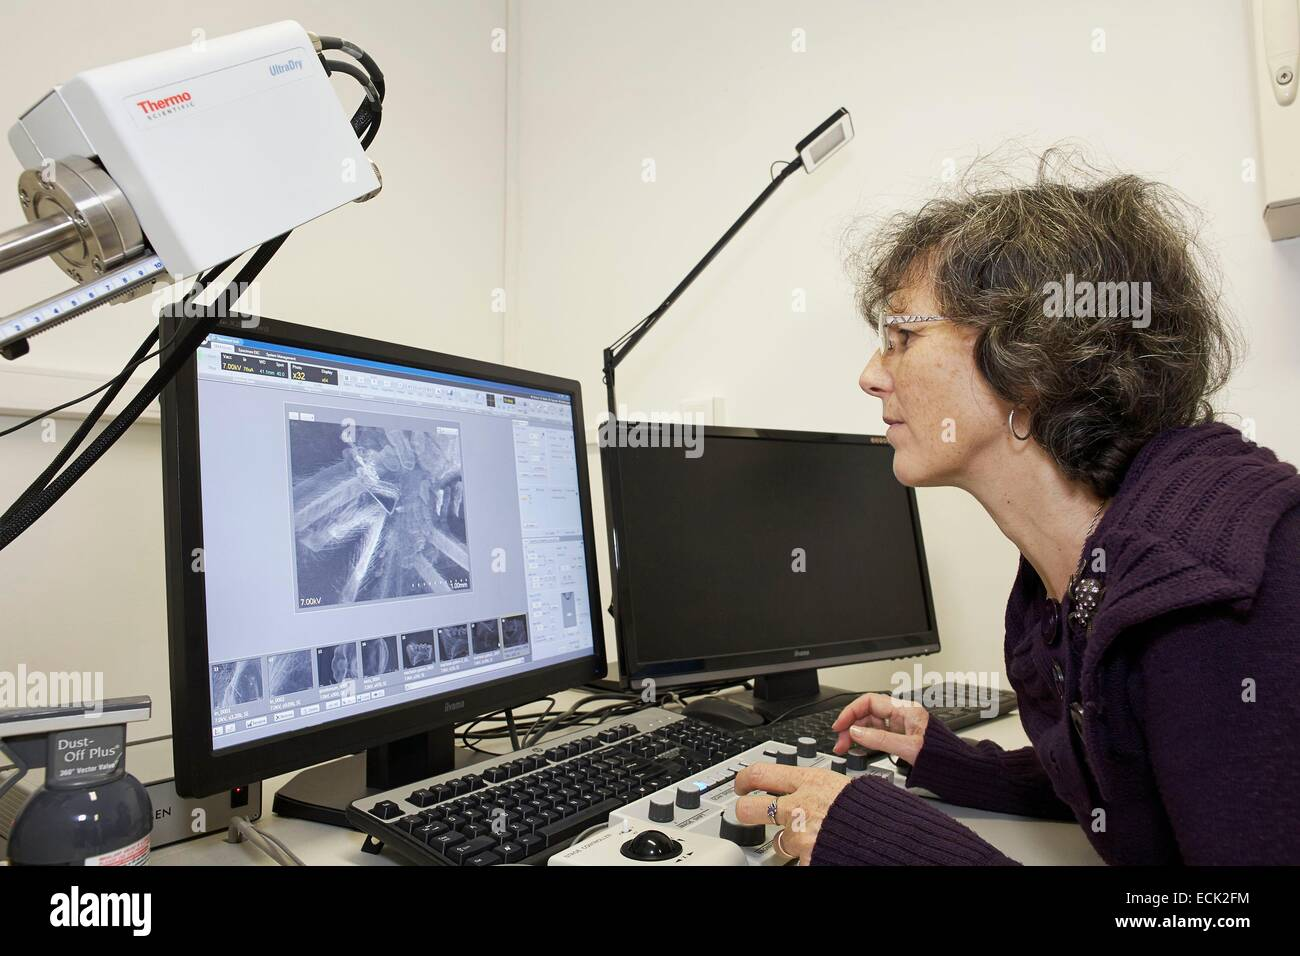 France, Paris, National Museum of Natural History, Christine Rollard, araneologist, taking pictures of arachnids - Stock Image